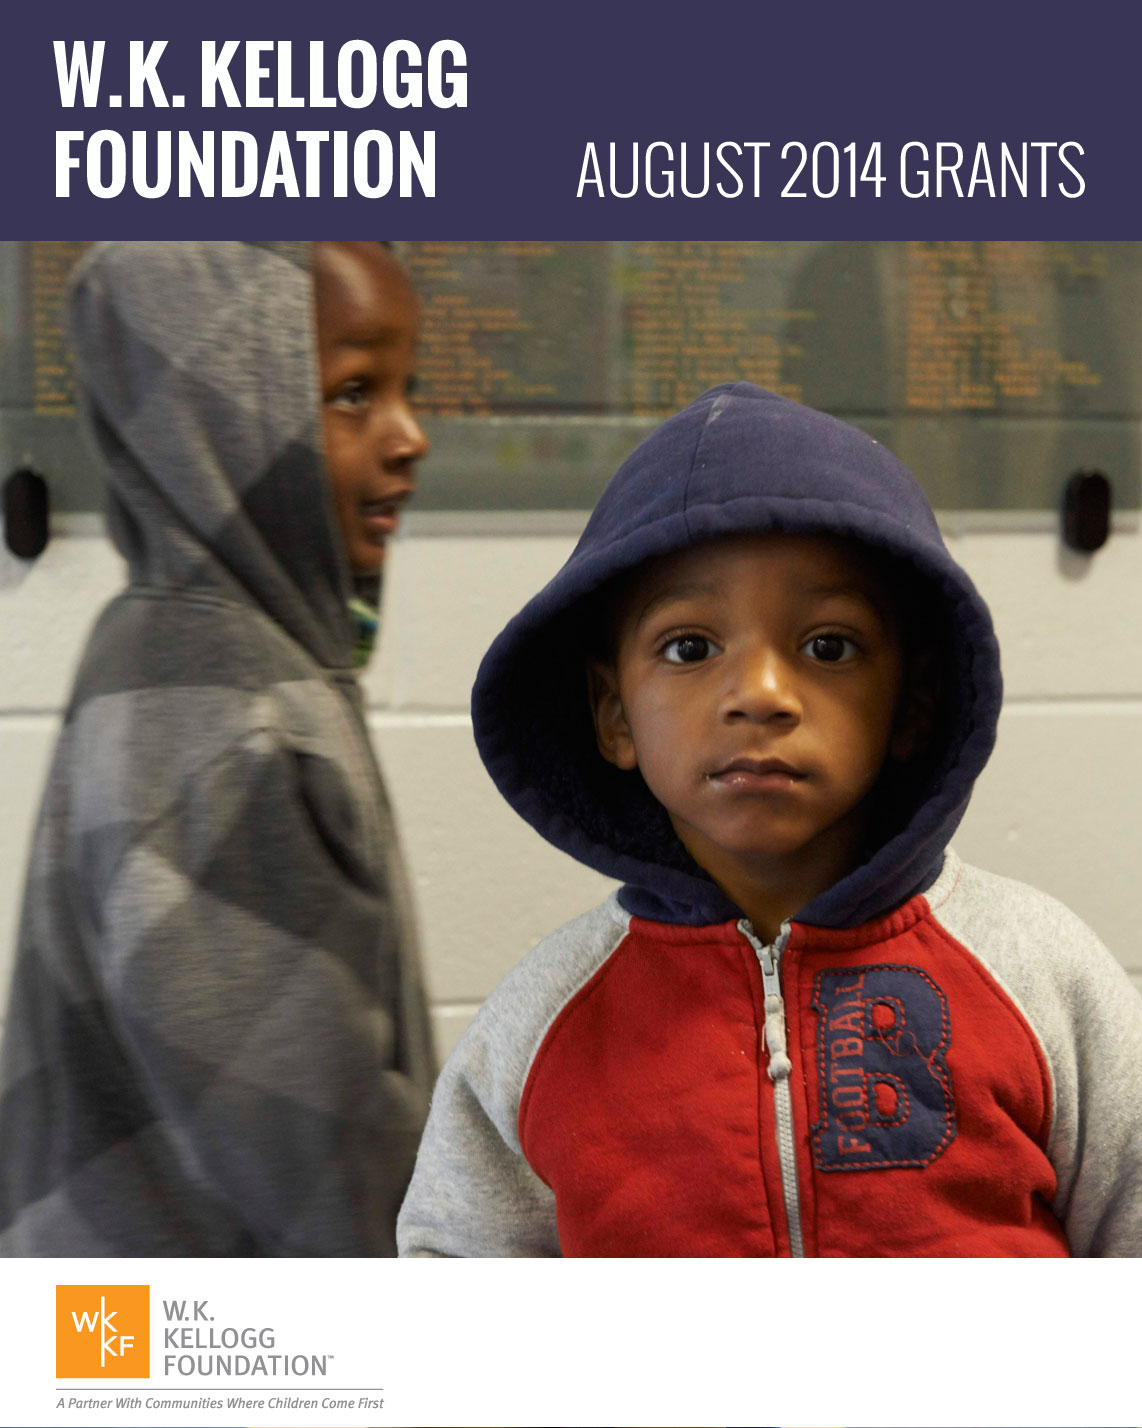 W.K. Kellogg Foundation August 2014 Grants